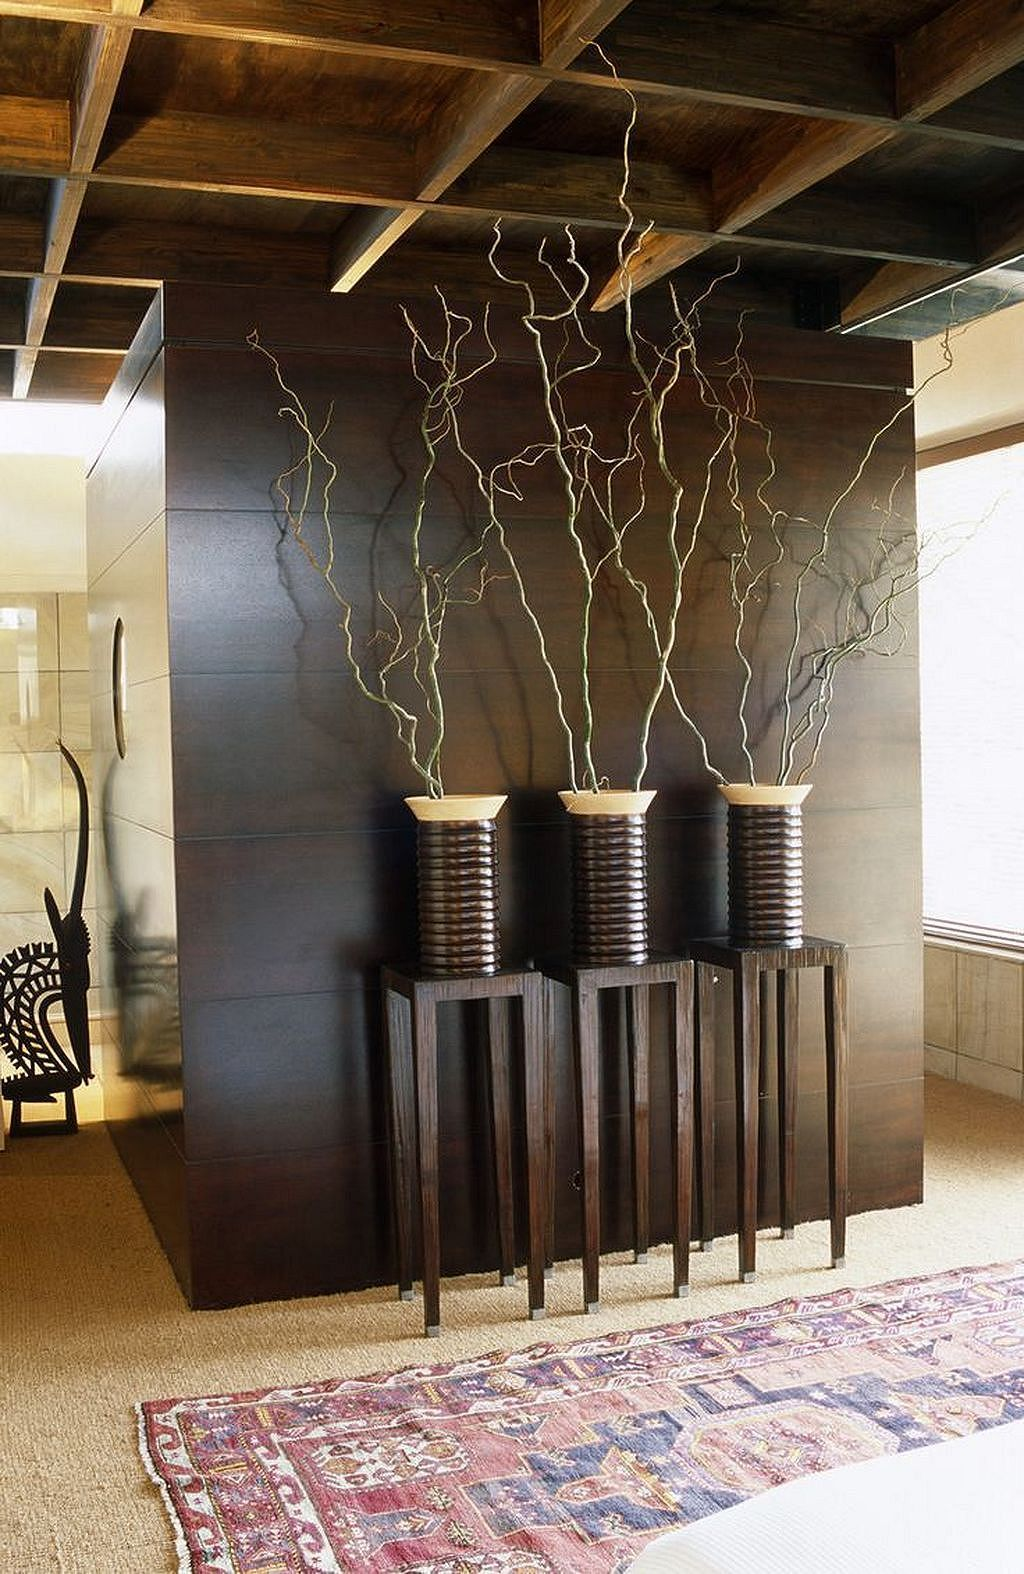 Creative Modern Decor With Afrocentric African Style Ideas (57) #style #shopping #styles #outfit #pretty #girl #girls #beauty #beautiful #me #cute #stylish #photooftheday #swag #dress #shoes #diy #design #fashion #homedecor